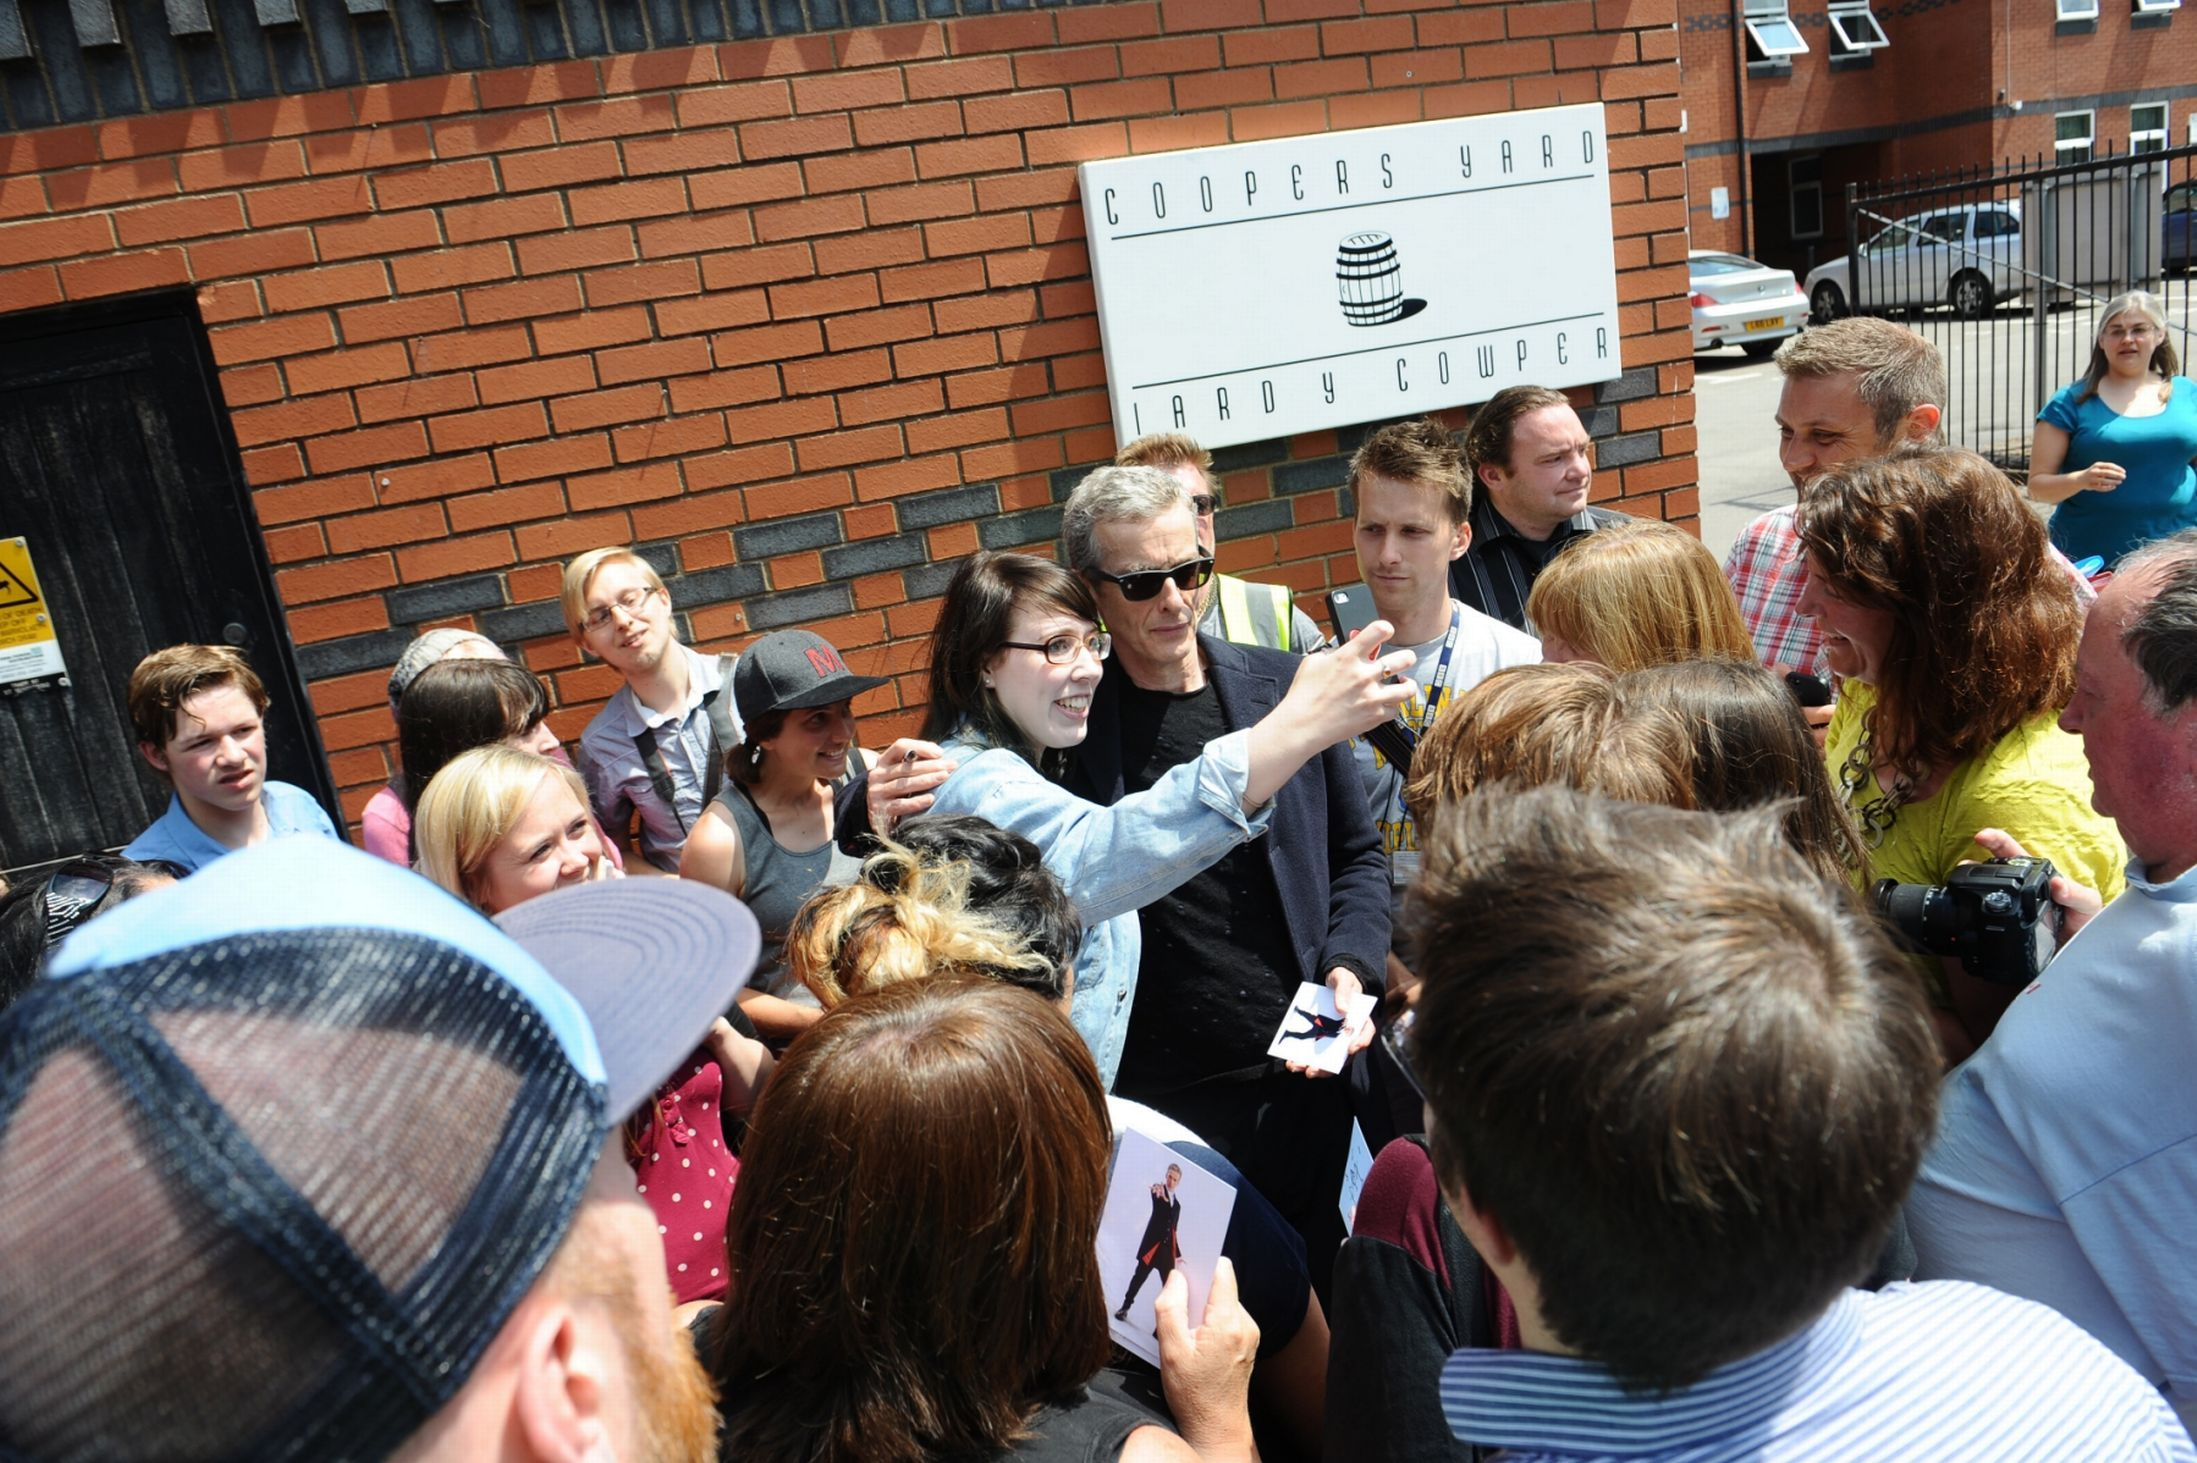 EXCLUSIVE: 8 pictures of Doctor Who filming at Cardiff cafe today